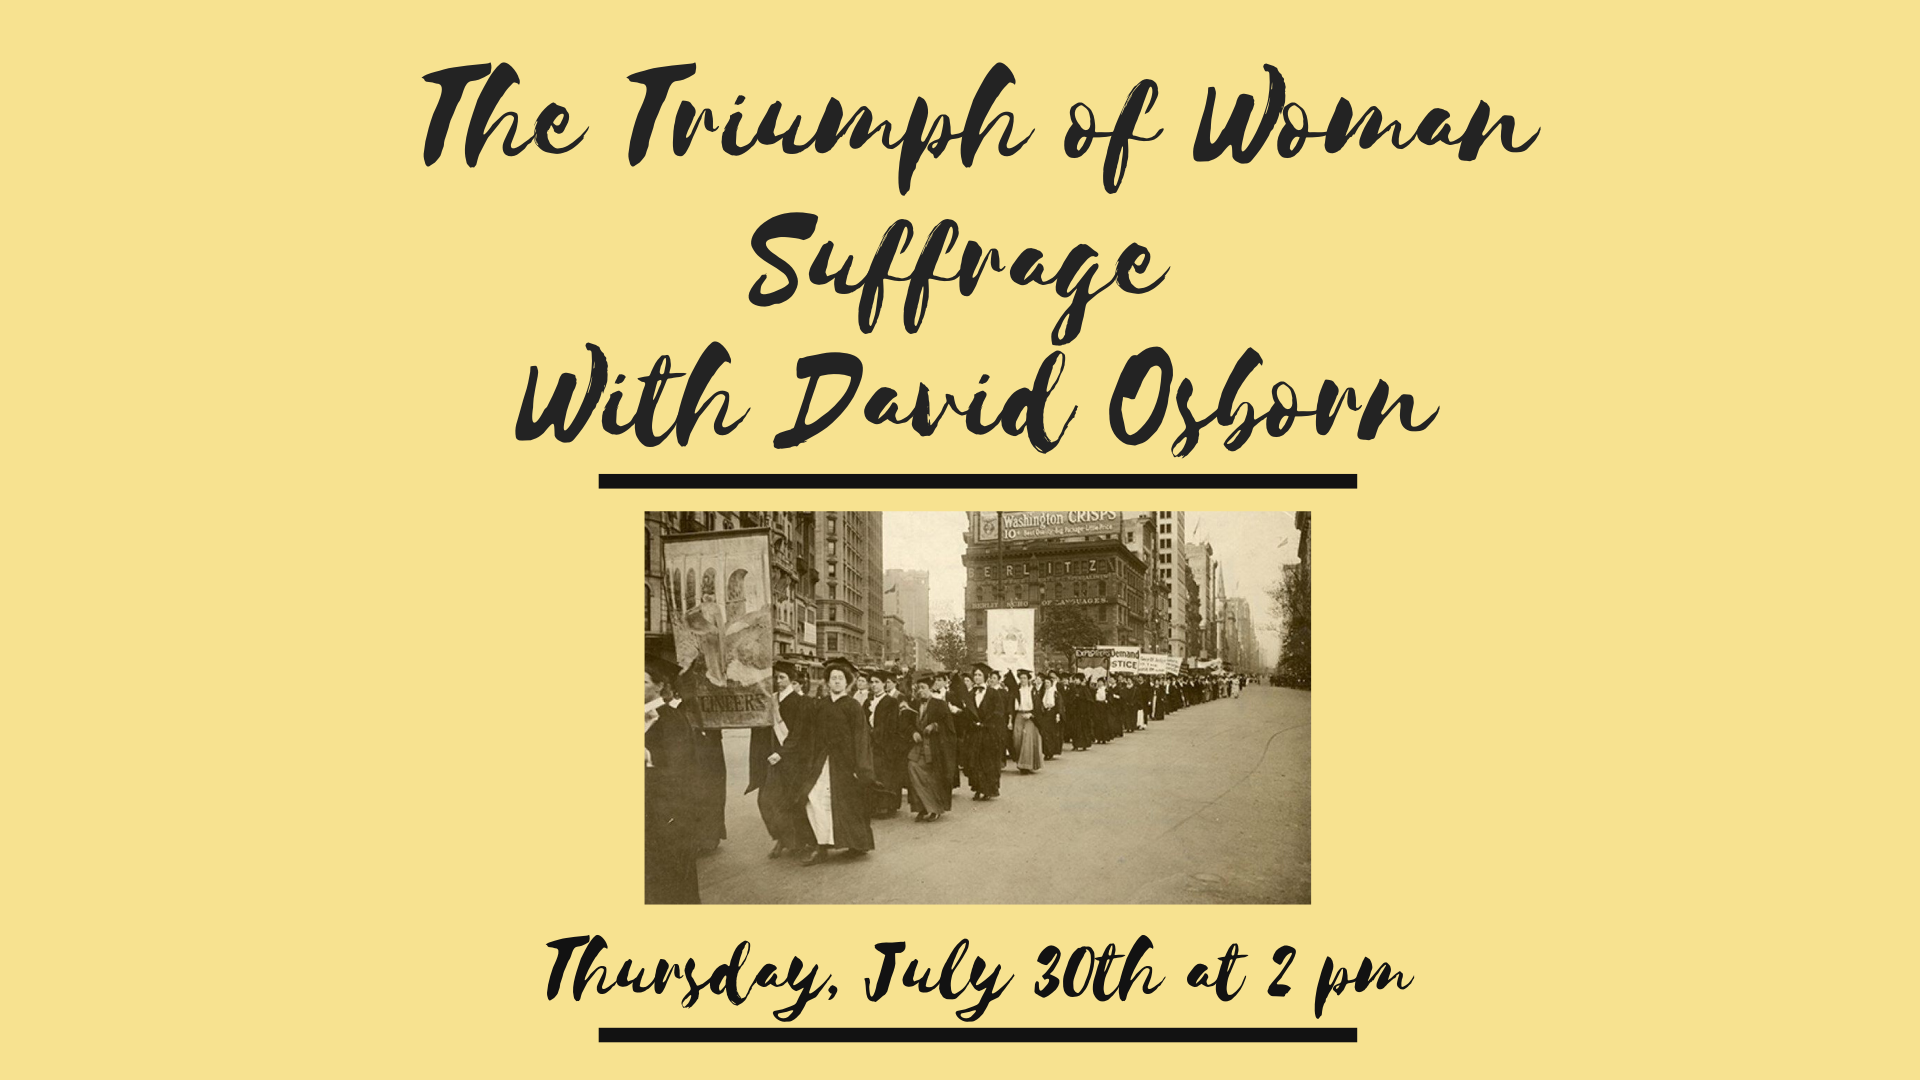 The Triumph of Woman Suffrage with David Osborn, St. Paul's NHS